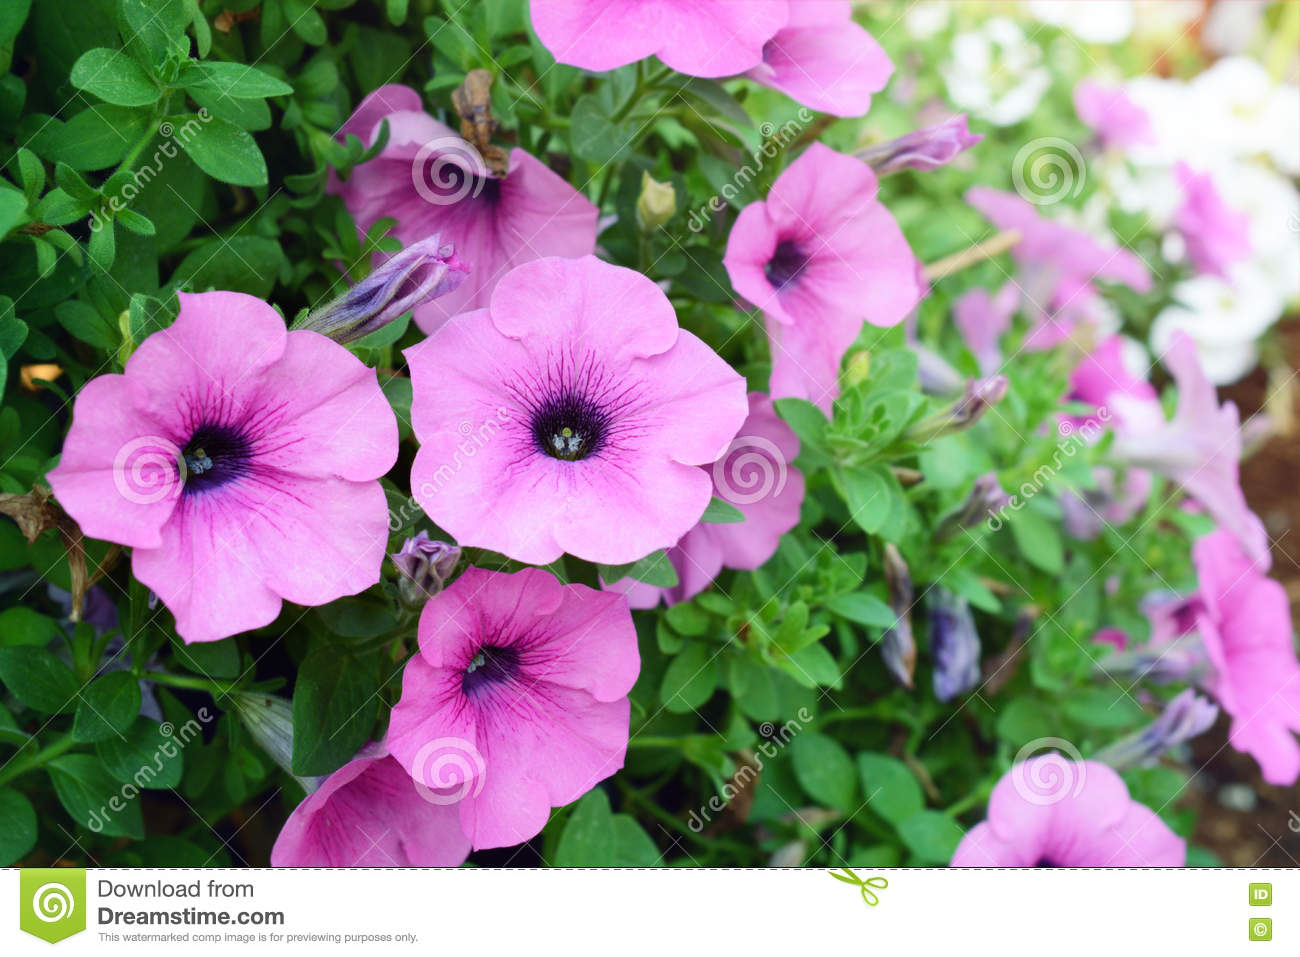 Pink color petunia flowers stock image. Image of grow - 73762161